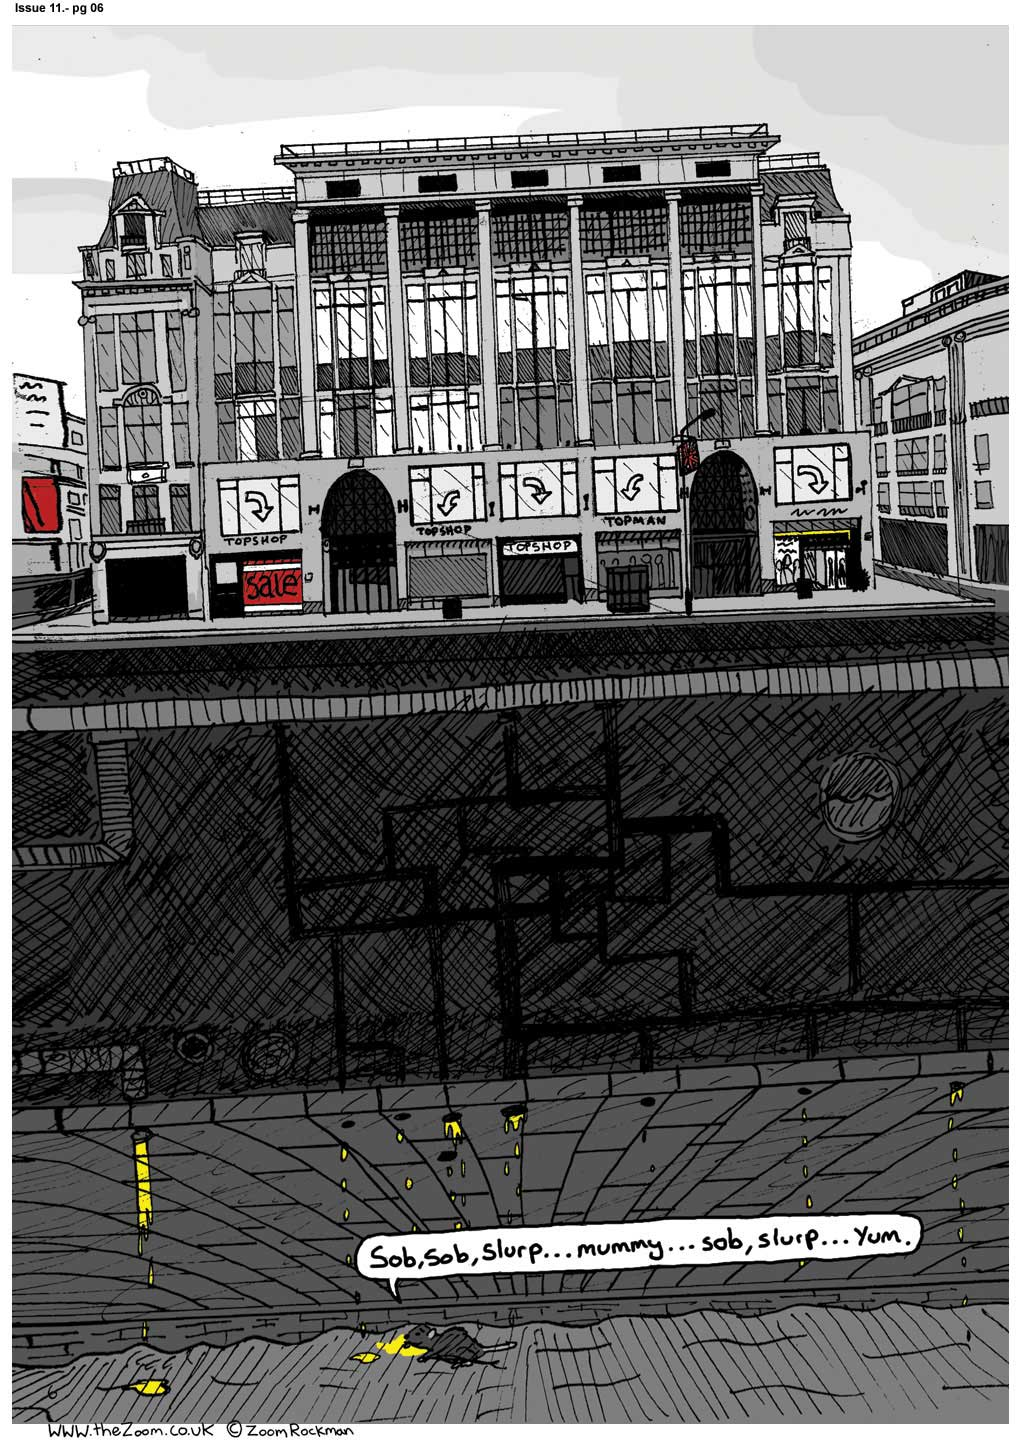 The Zoom! - Issue 11 - Page 6